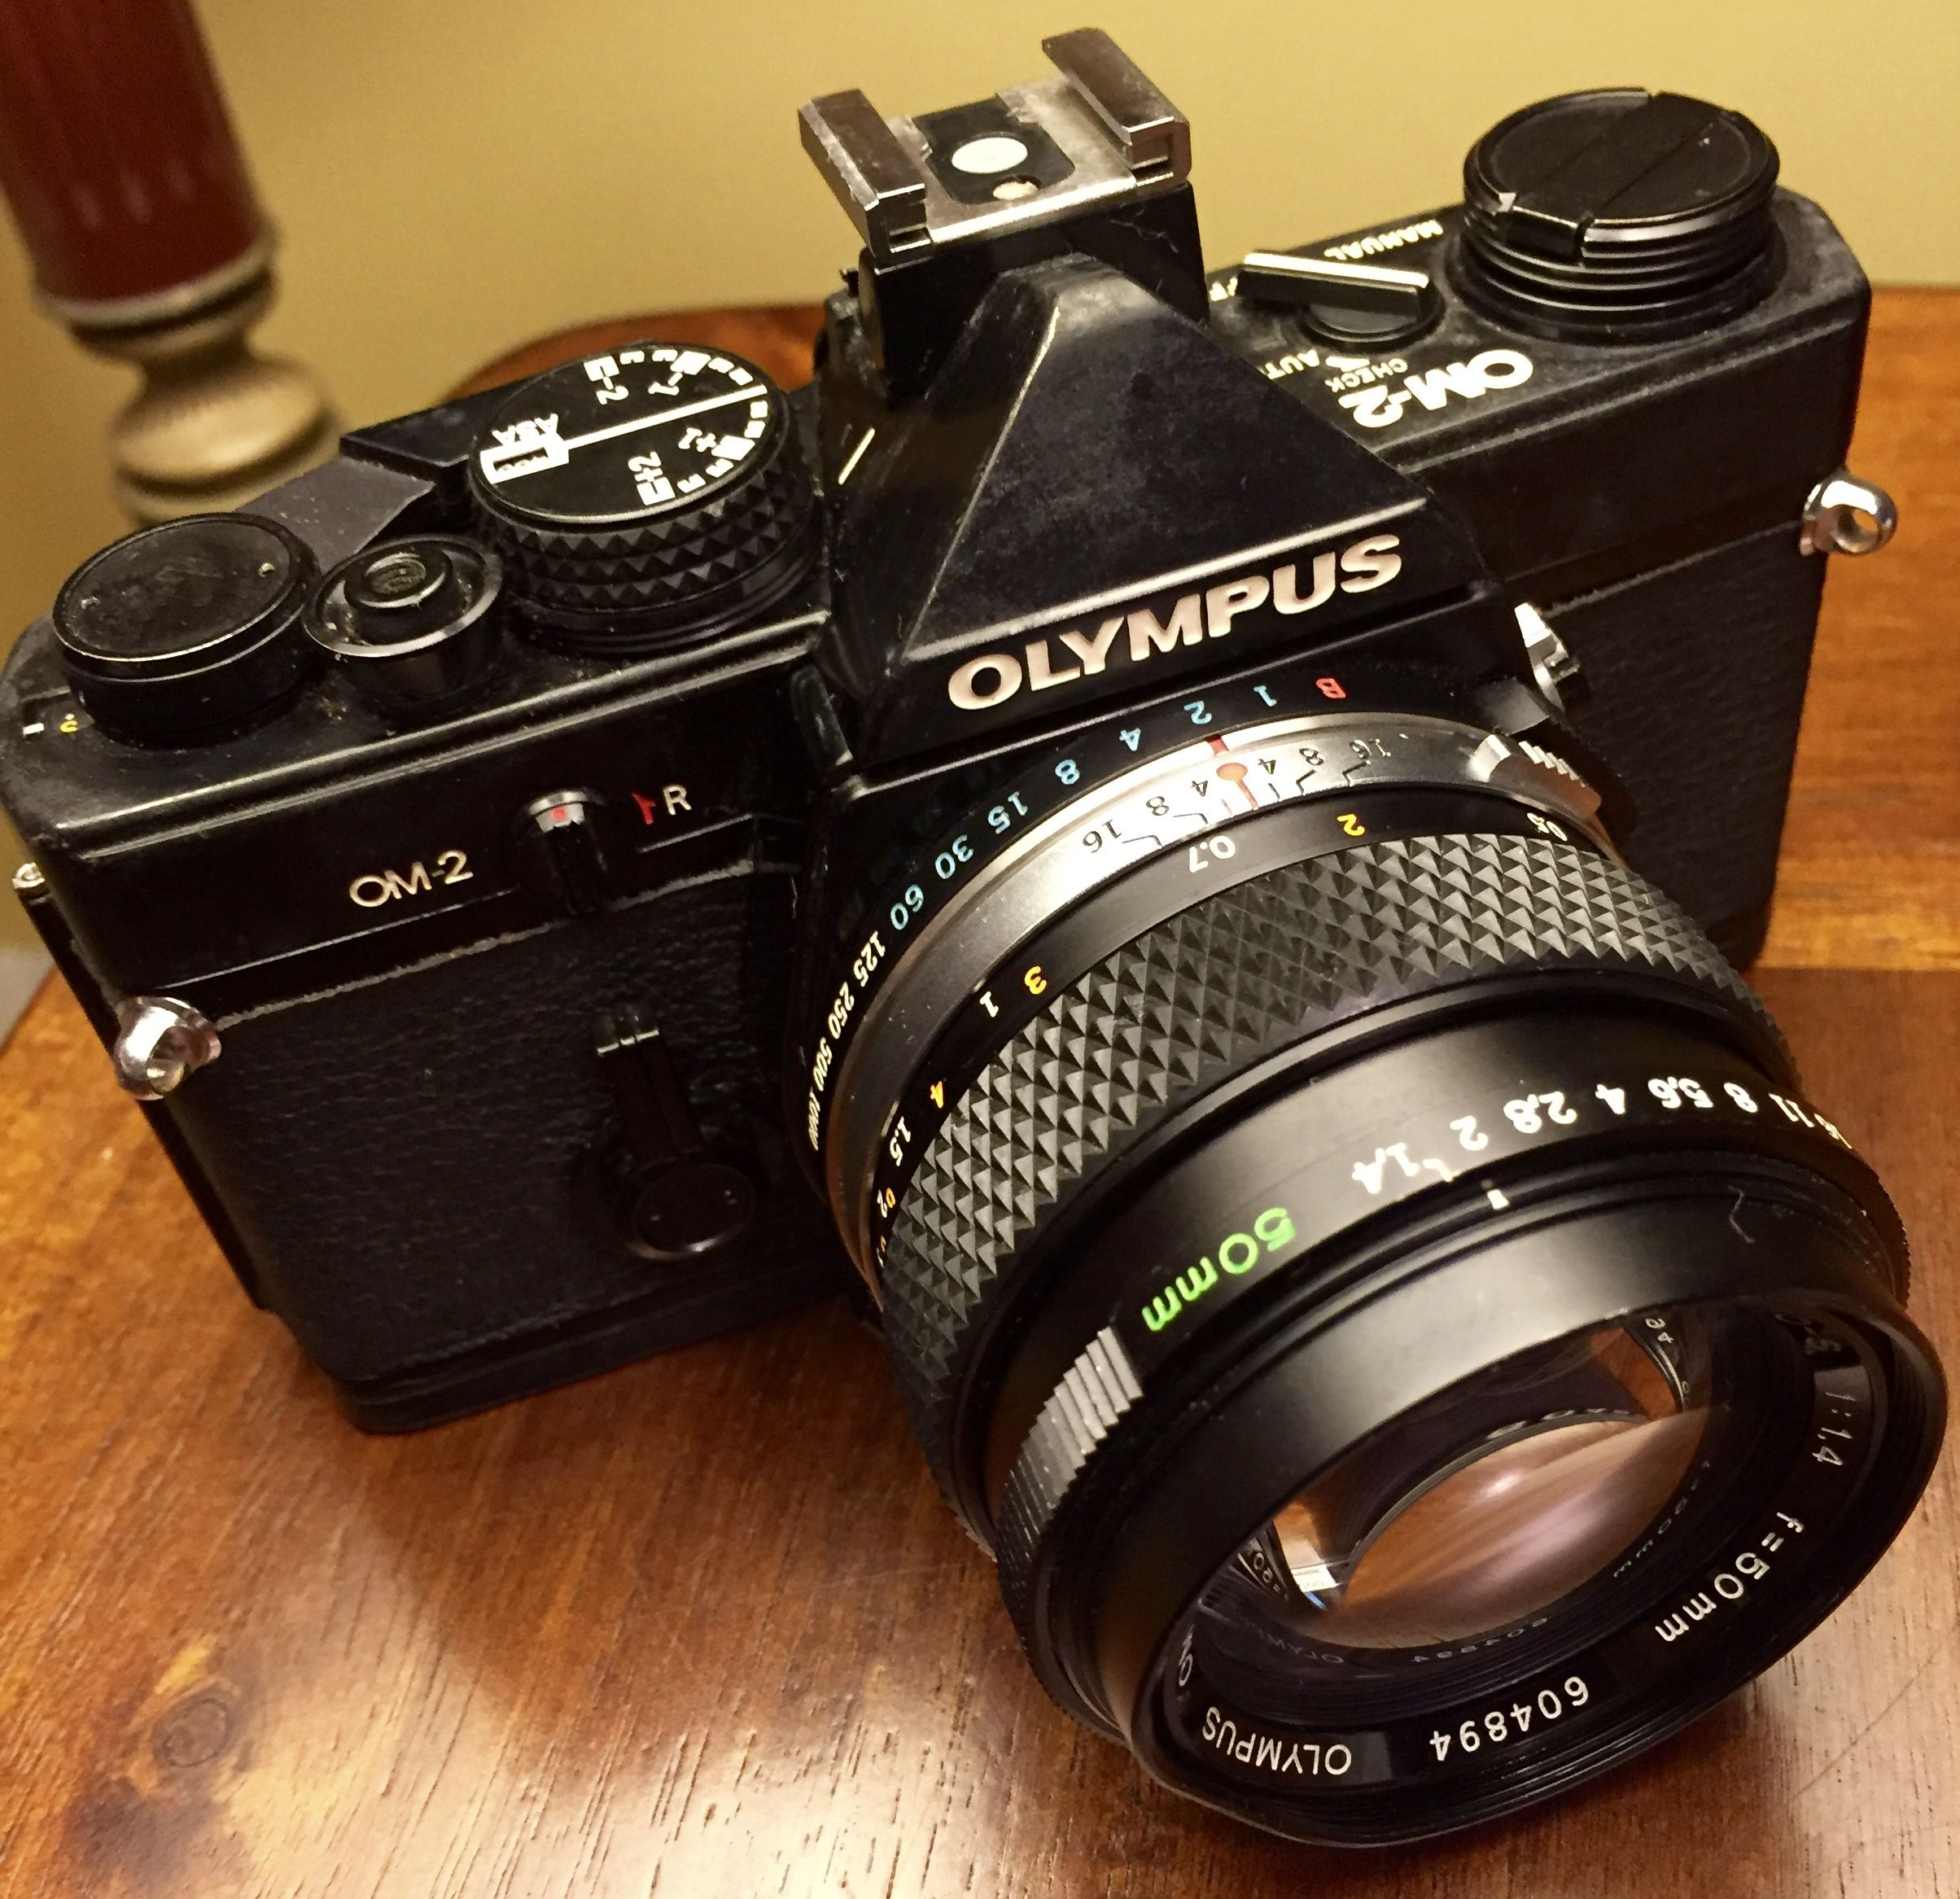 Olympus OM-2, 1975. It was the first camera to offer a TTL direct metering system for film, named Auto Dynamic Metering (ADM)